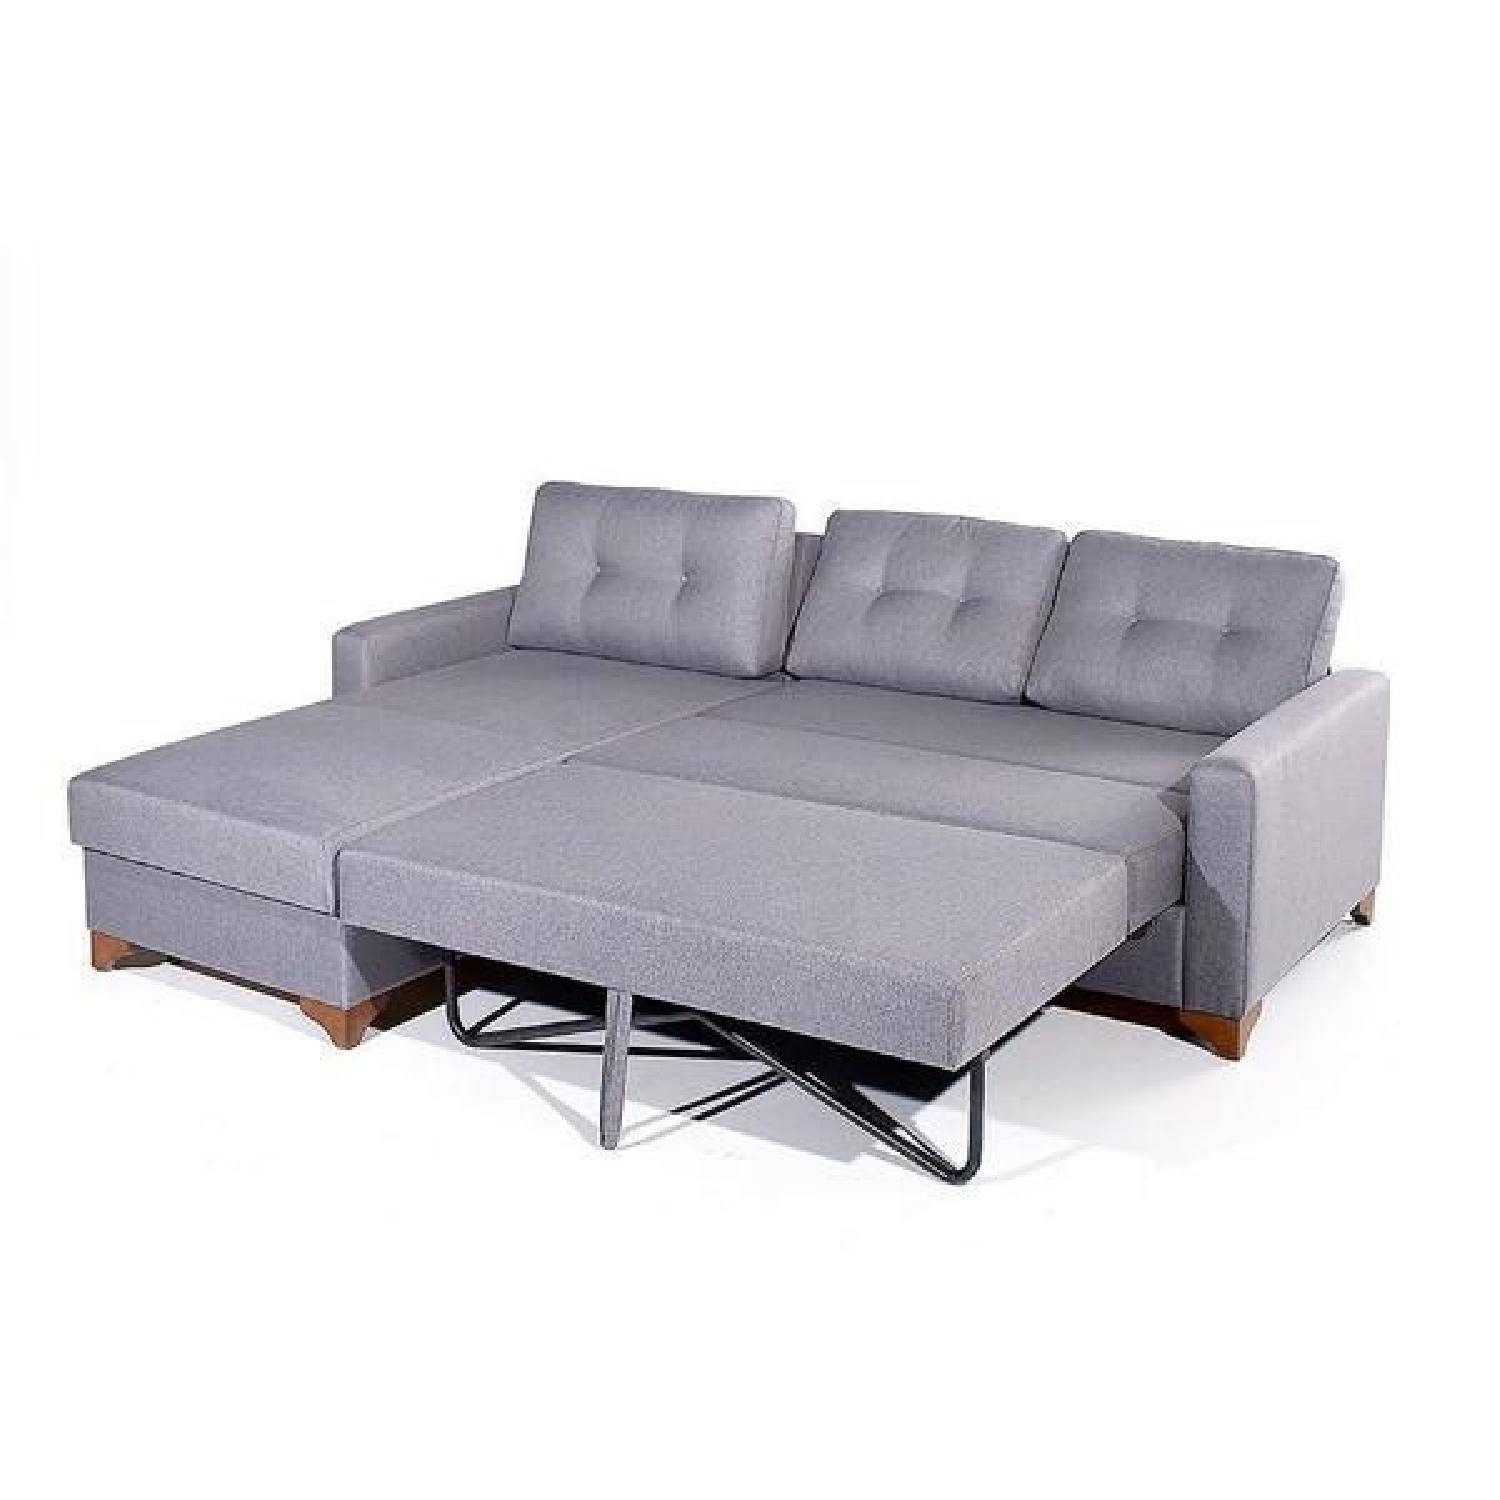 Sleeper Sectional Sofa W/ Storage - Aptdeco with regard to Sectional Sofa With Storage (Image 19 of 25)